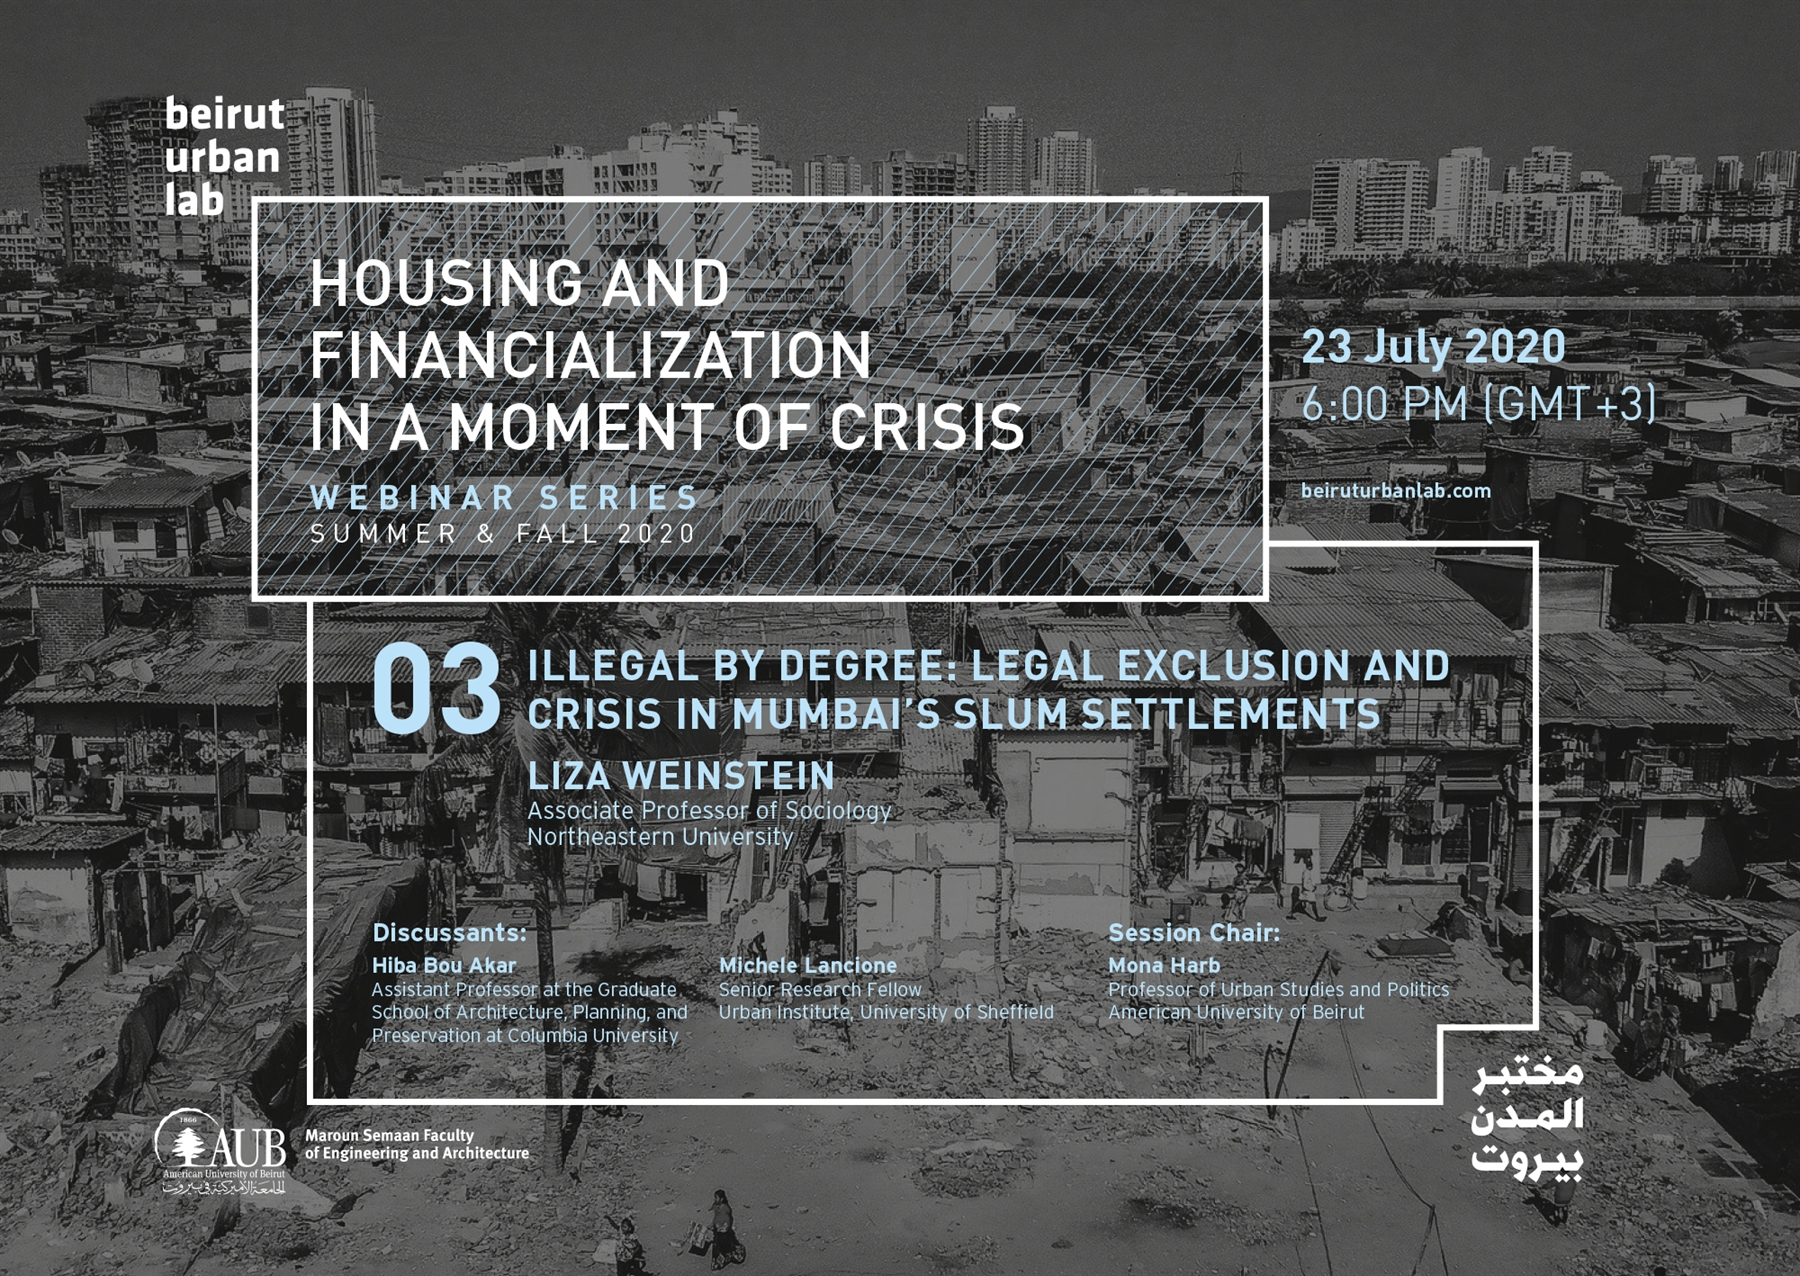 Liza Weinstein: Illegal by Degree: Legal Exclusion and Crisis in Mumbai's Slum Settlements